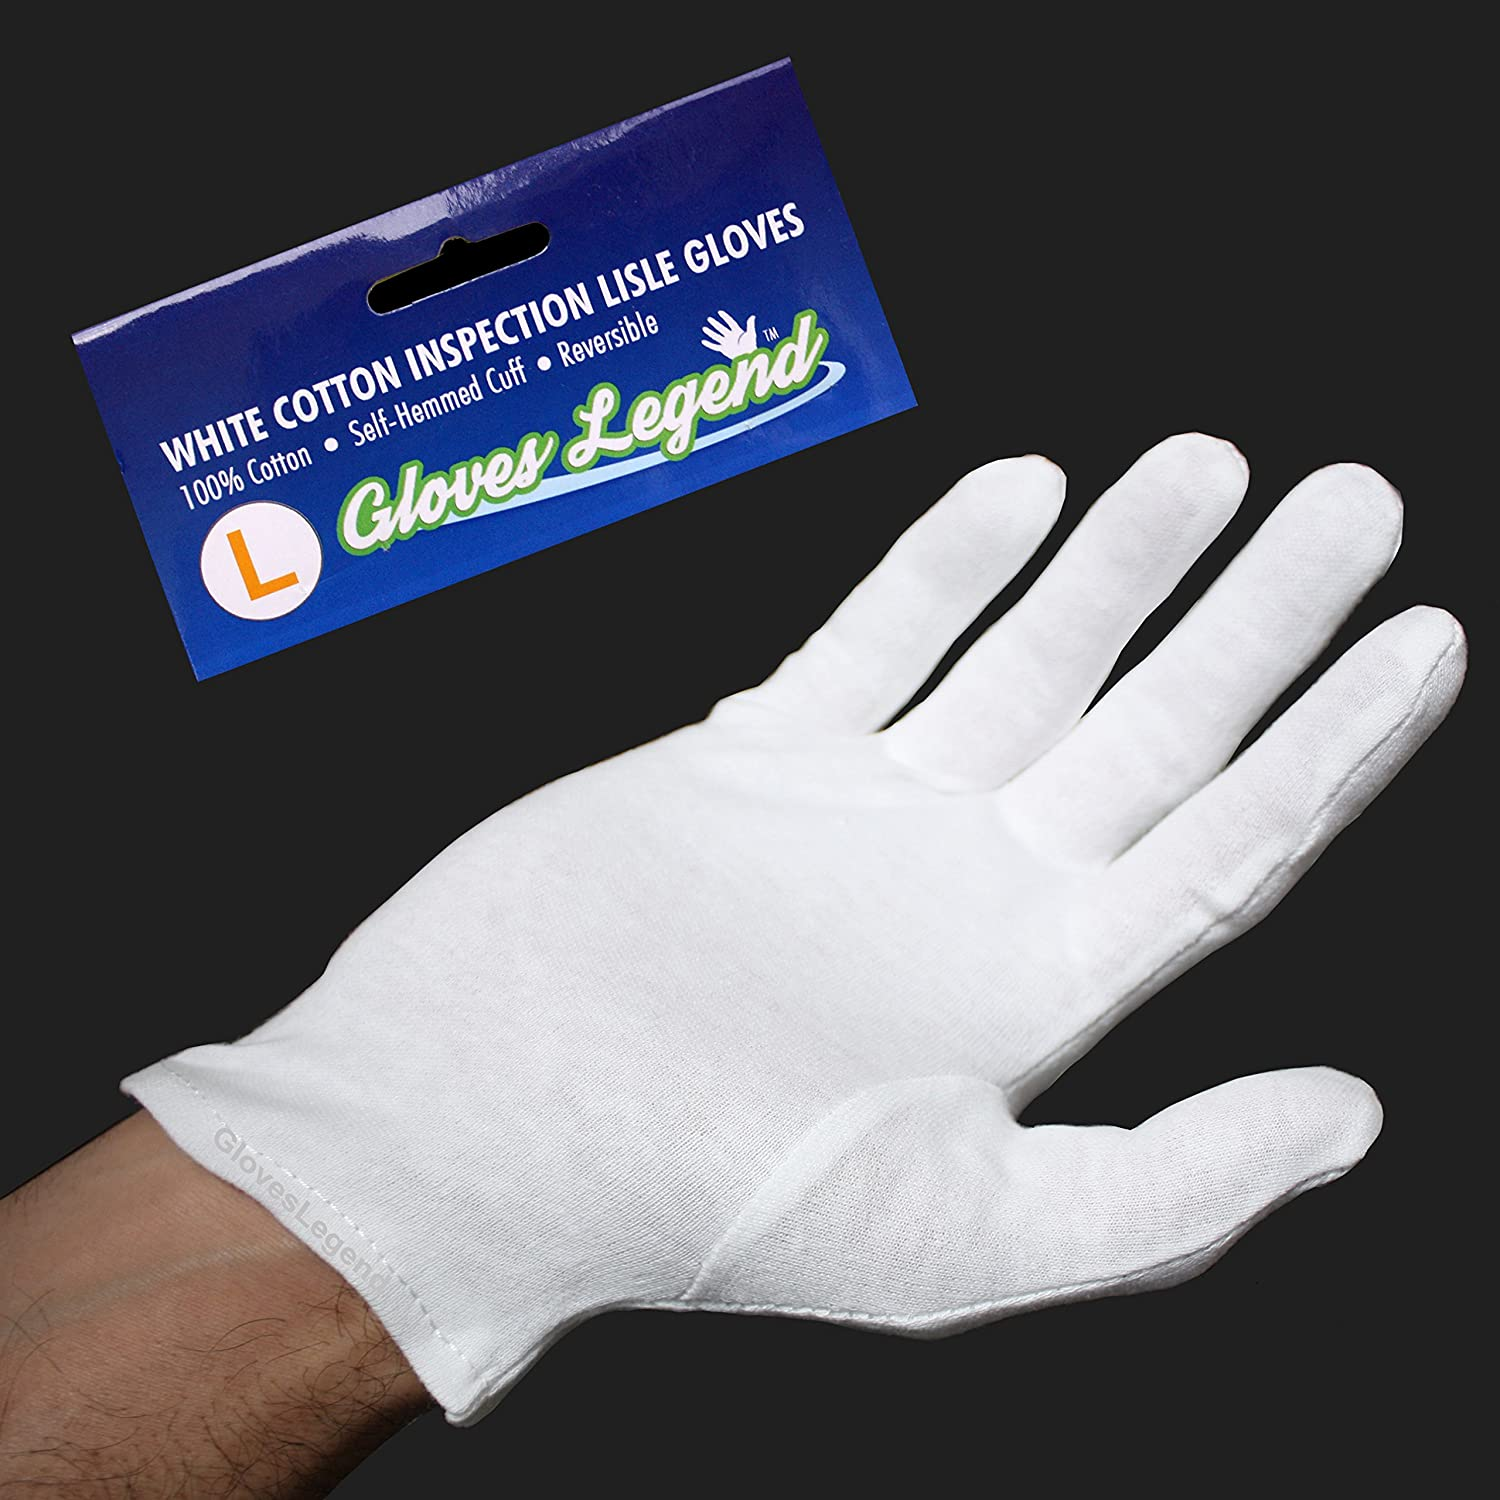 Mens leather gloves gq - Size Large 12 Pairs 24 Gloves Gloves Legend White Coin Jewelry Silver Inspection 100 Cotton Lisle Gloves Premium Weight Amazon Com Industrial